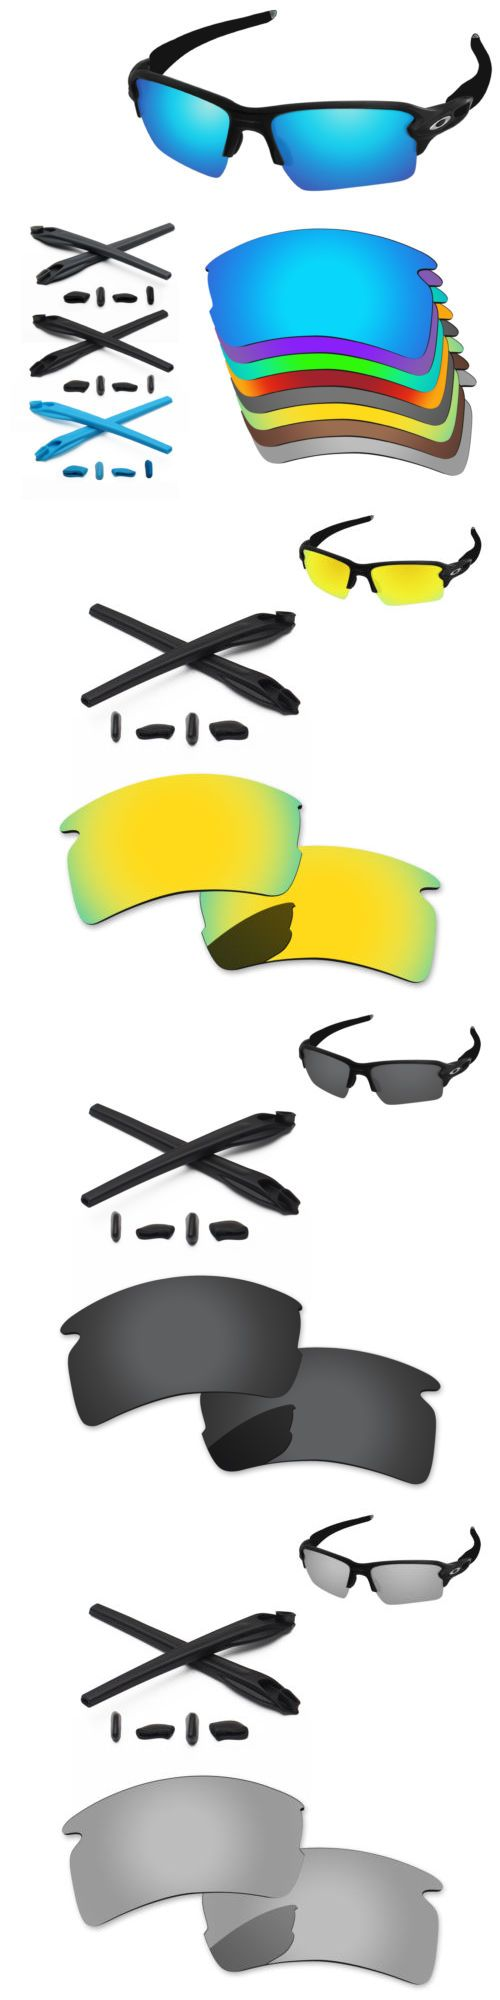 722b159dfbc Replacement Lenses and Parts 179195  Papaviva Polarized Replacement Lenses  And Kit For-Oakley Flak 2.0 Xl Oo9188 - Opt -  BUY IT NOW ONLY   19.98 on   eBay ...